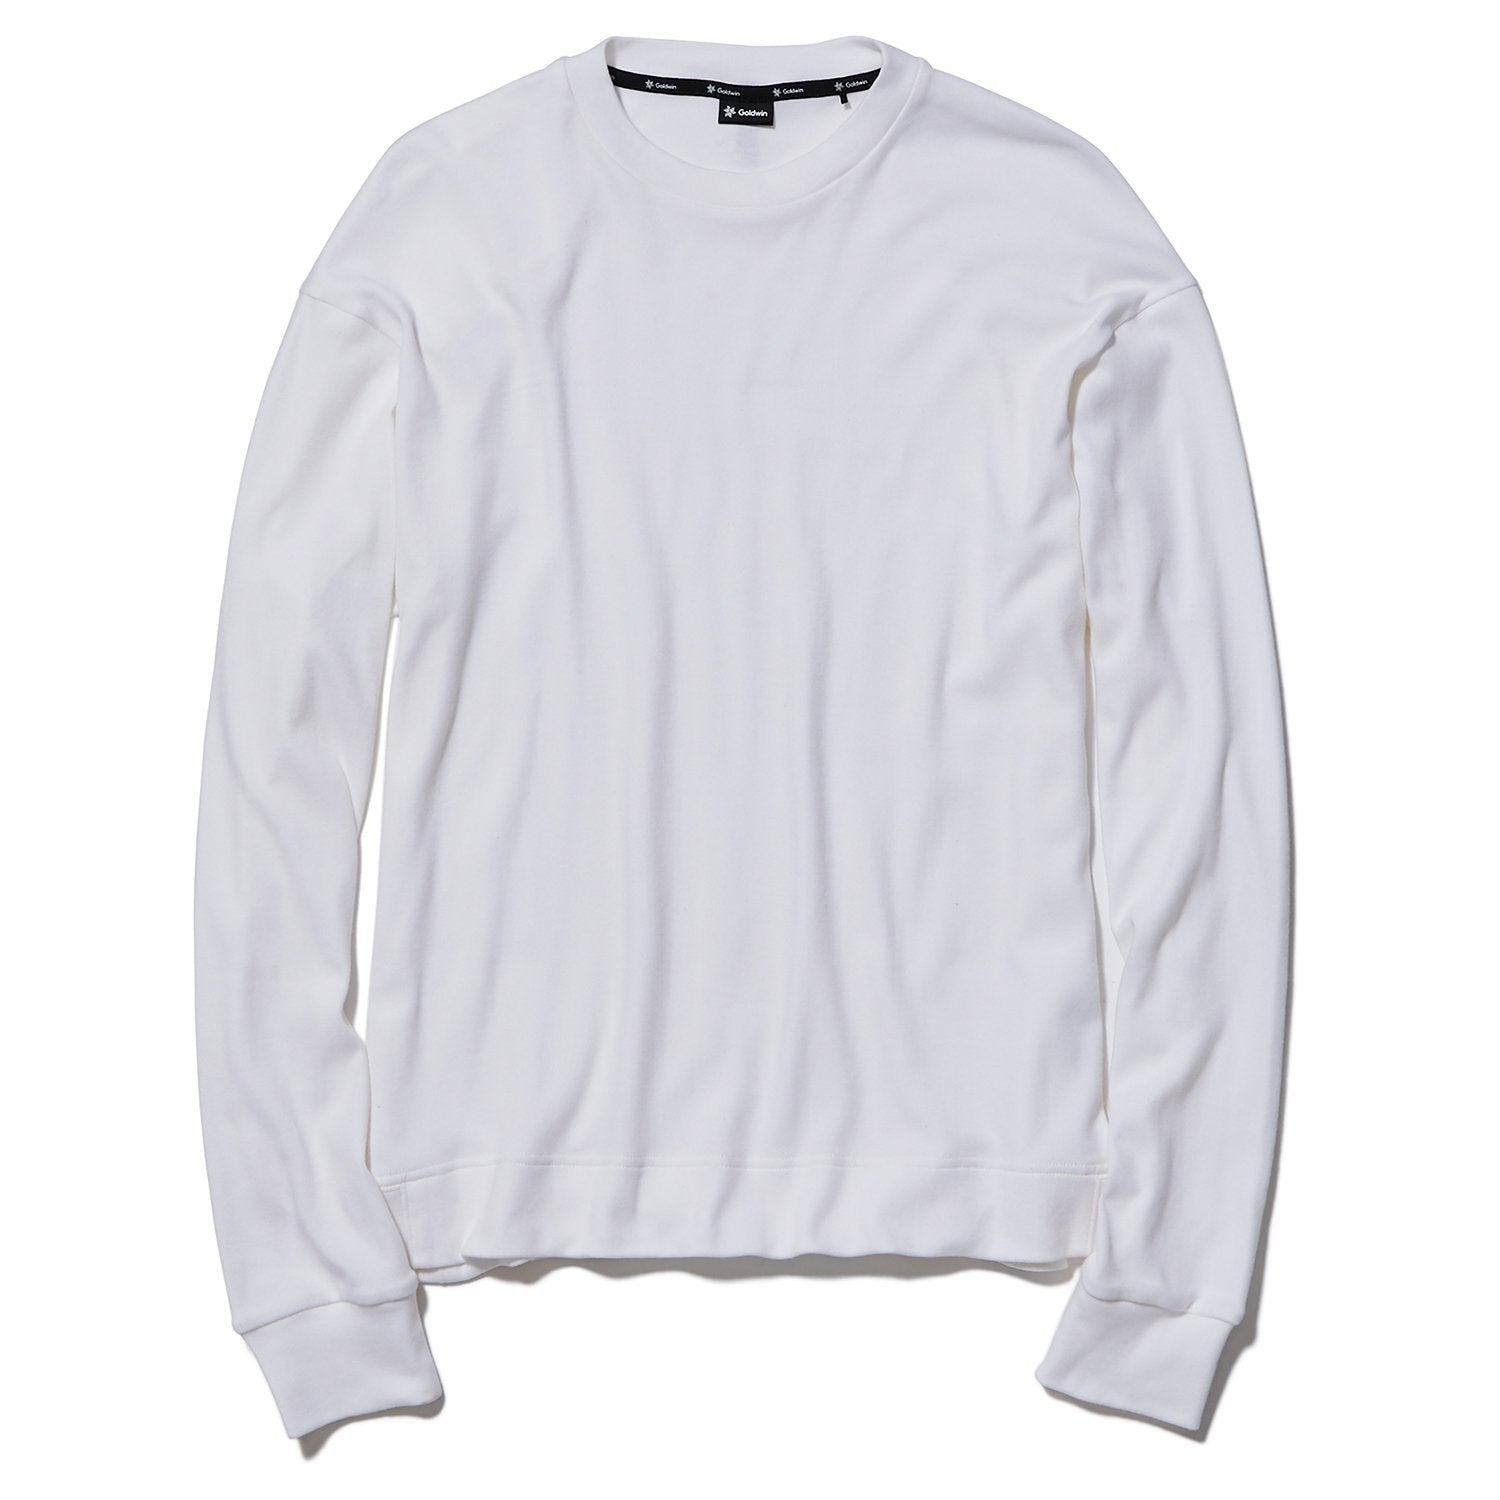 SMOOTH LONG SLEEVES